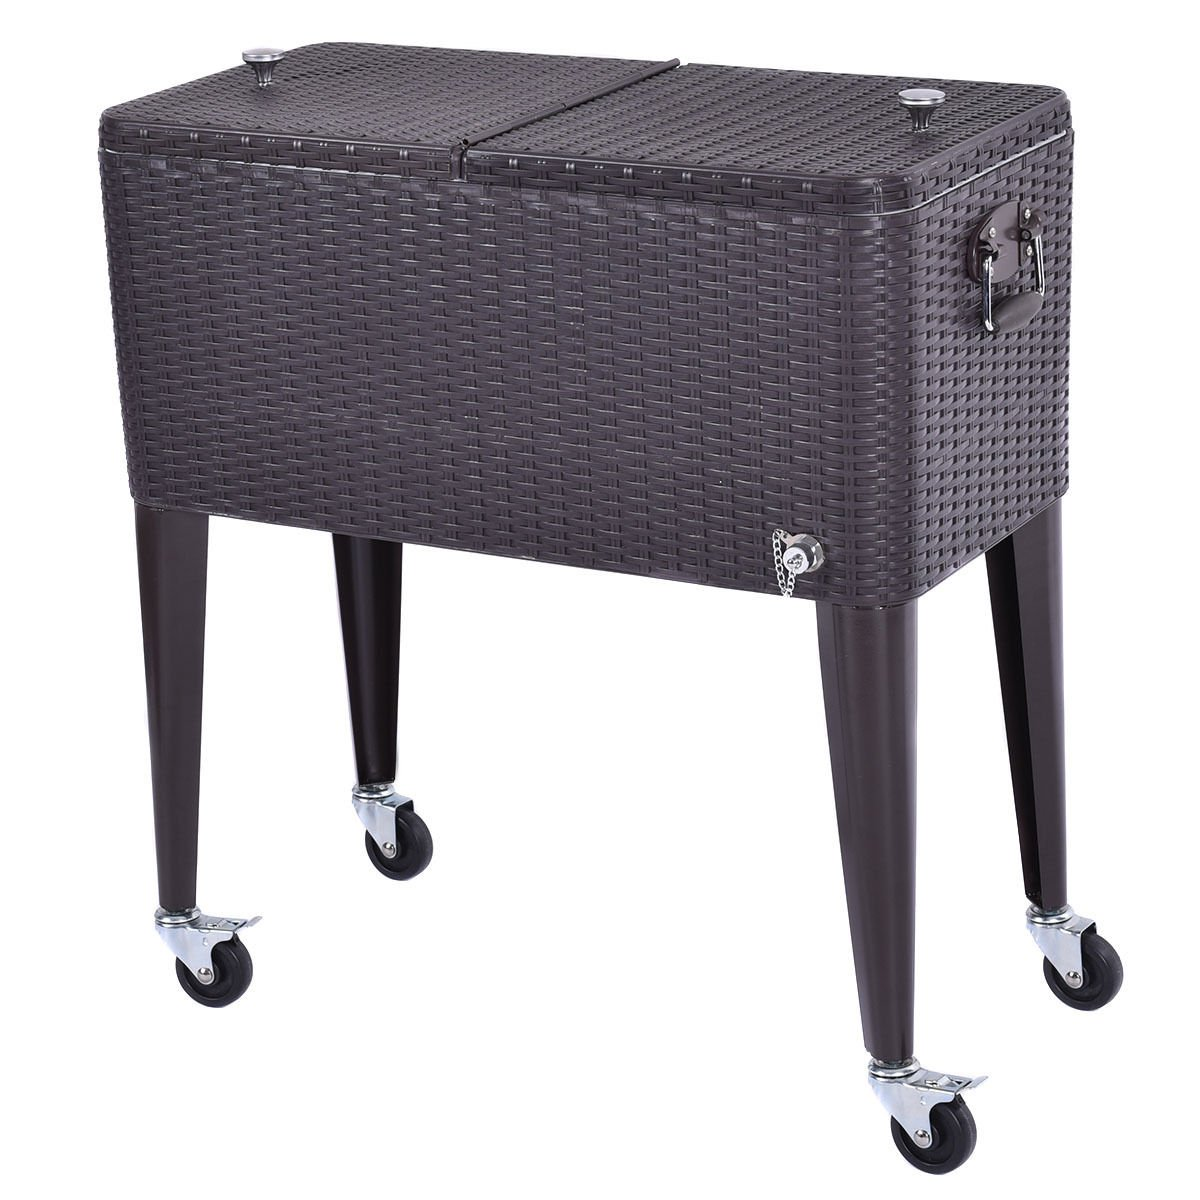 Amazon.com : Giantex 80 Quart Rattan Rolling Cooler Cart Ice Beer Beverage  Chest On Wheels With Shelf Outdoor, Brown : Sports U0026 Outdoors